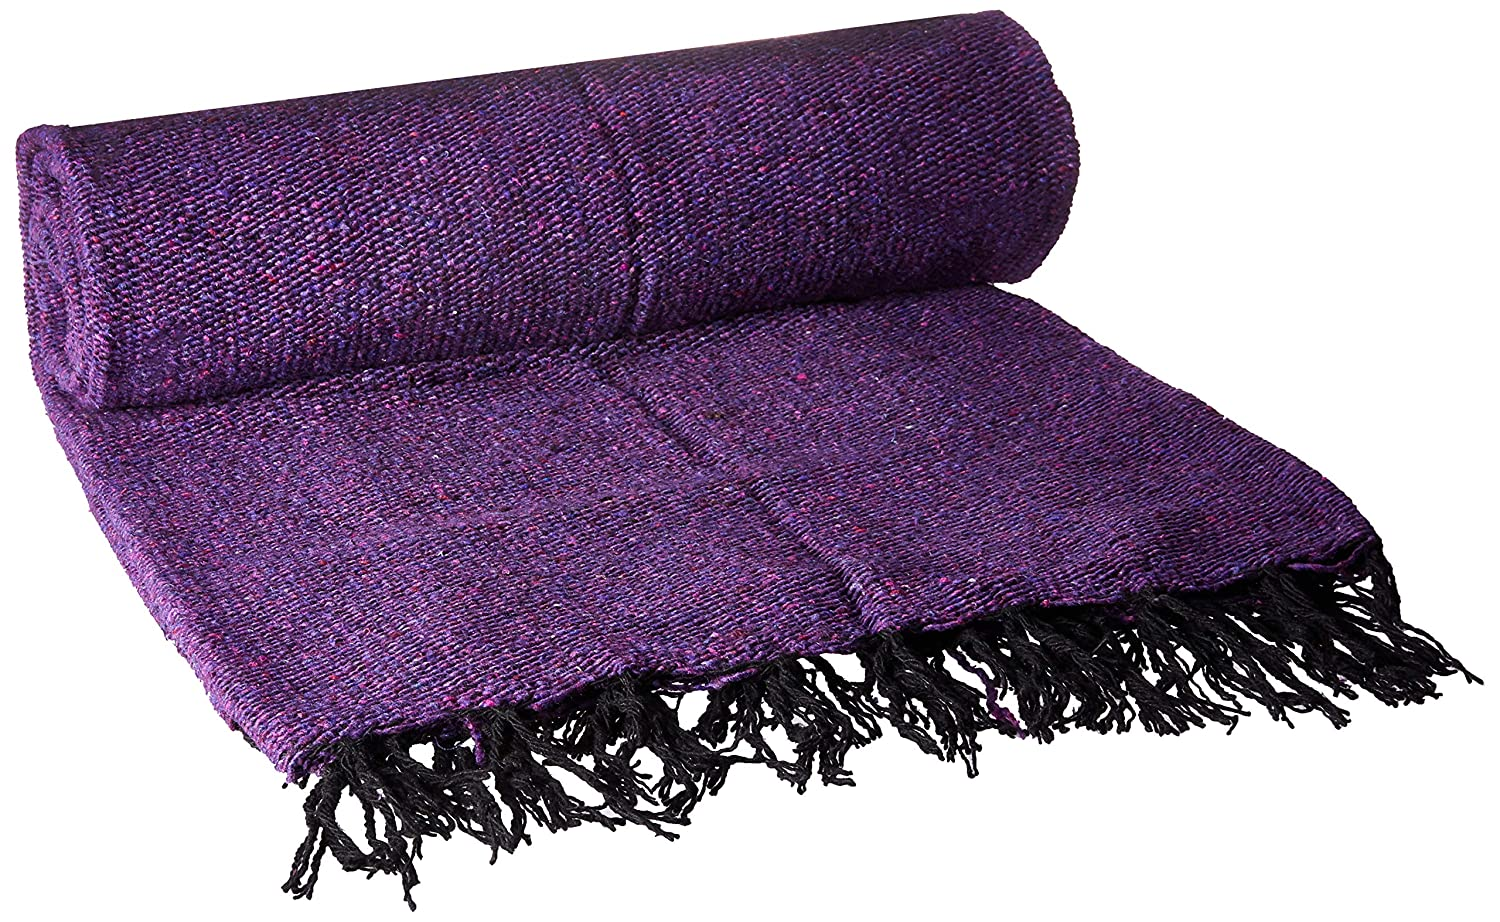 YogaDirect Solid Color Deluxe Mexican Yoga Blanket